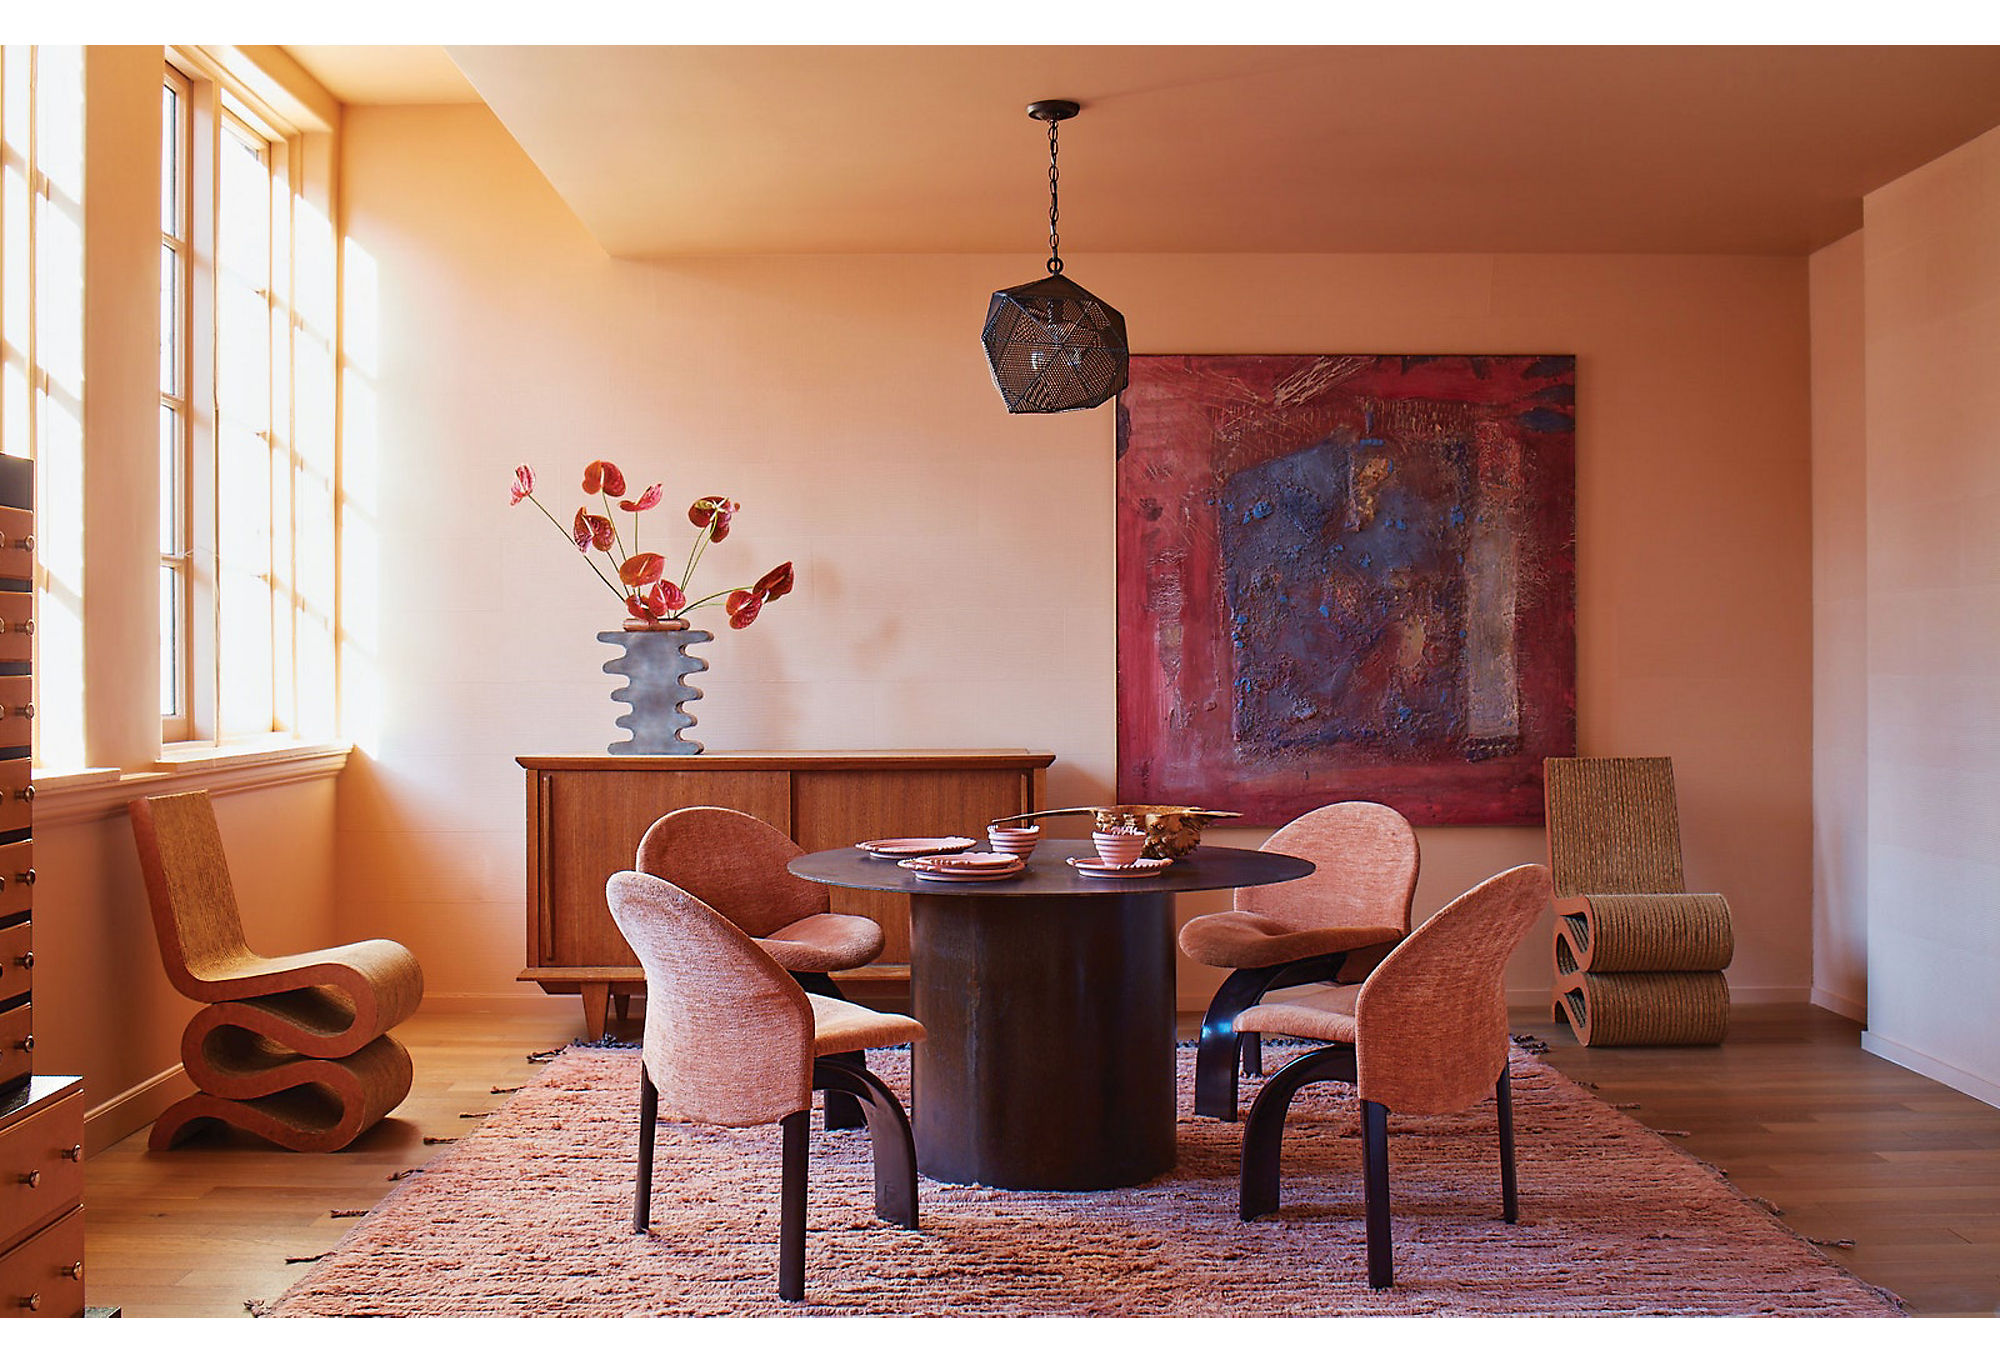 Faded Terracotta on the walls breathes life into this dining room, tying together the complementary textures and dynamic forms. Photo by Trevor Tondro.